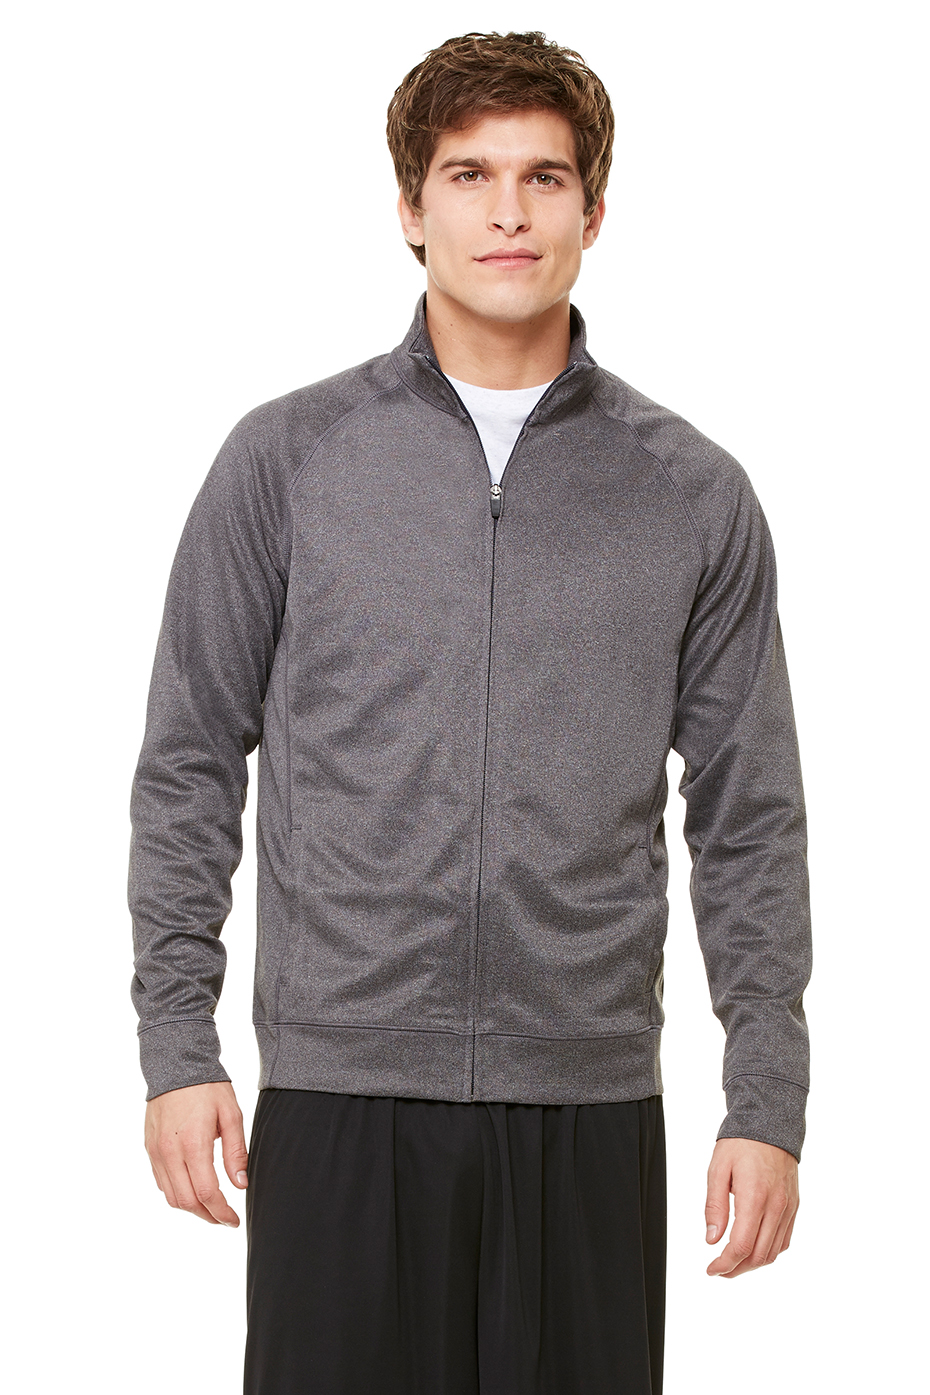 All Sport Men's Lightweight Jacket | Bella-Canvas